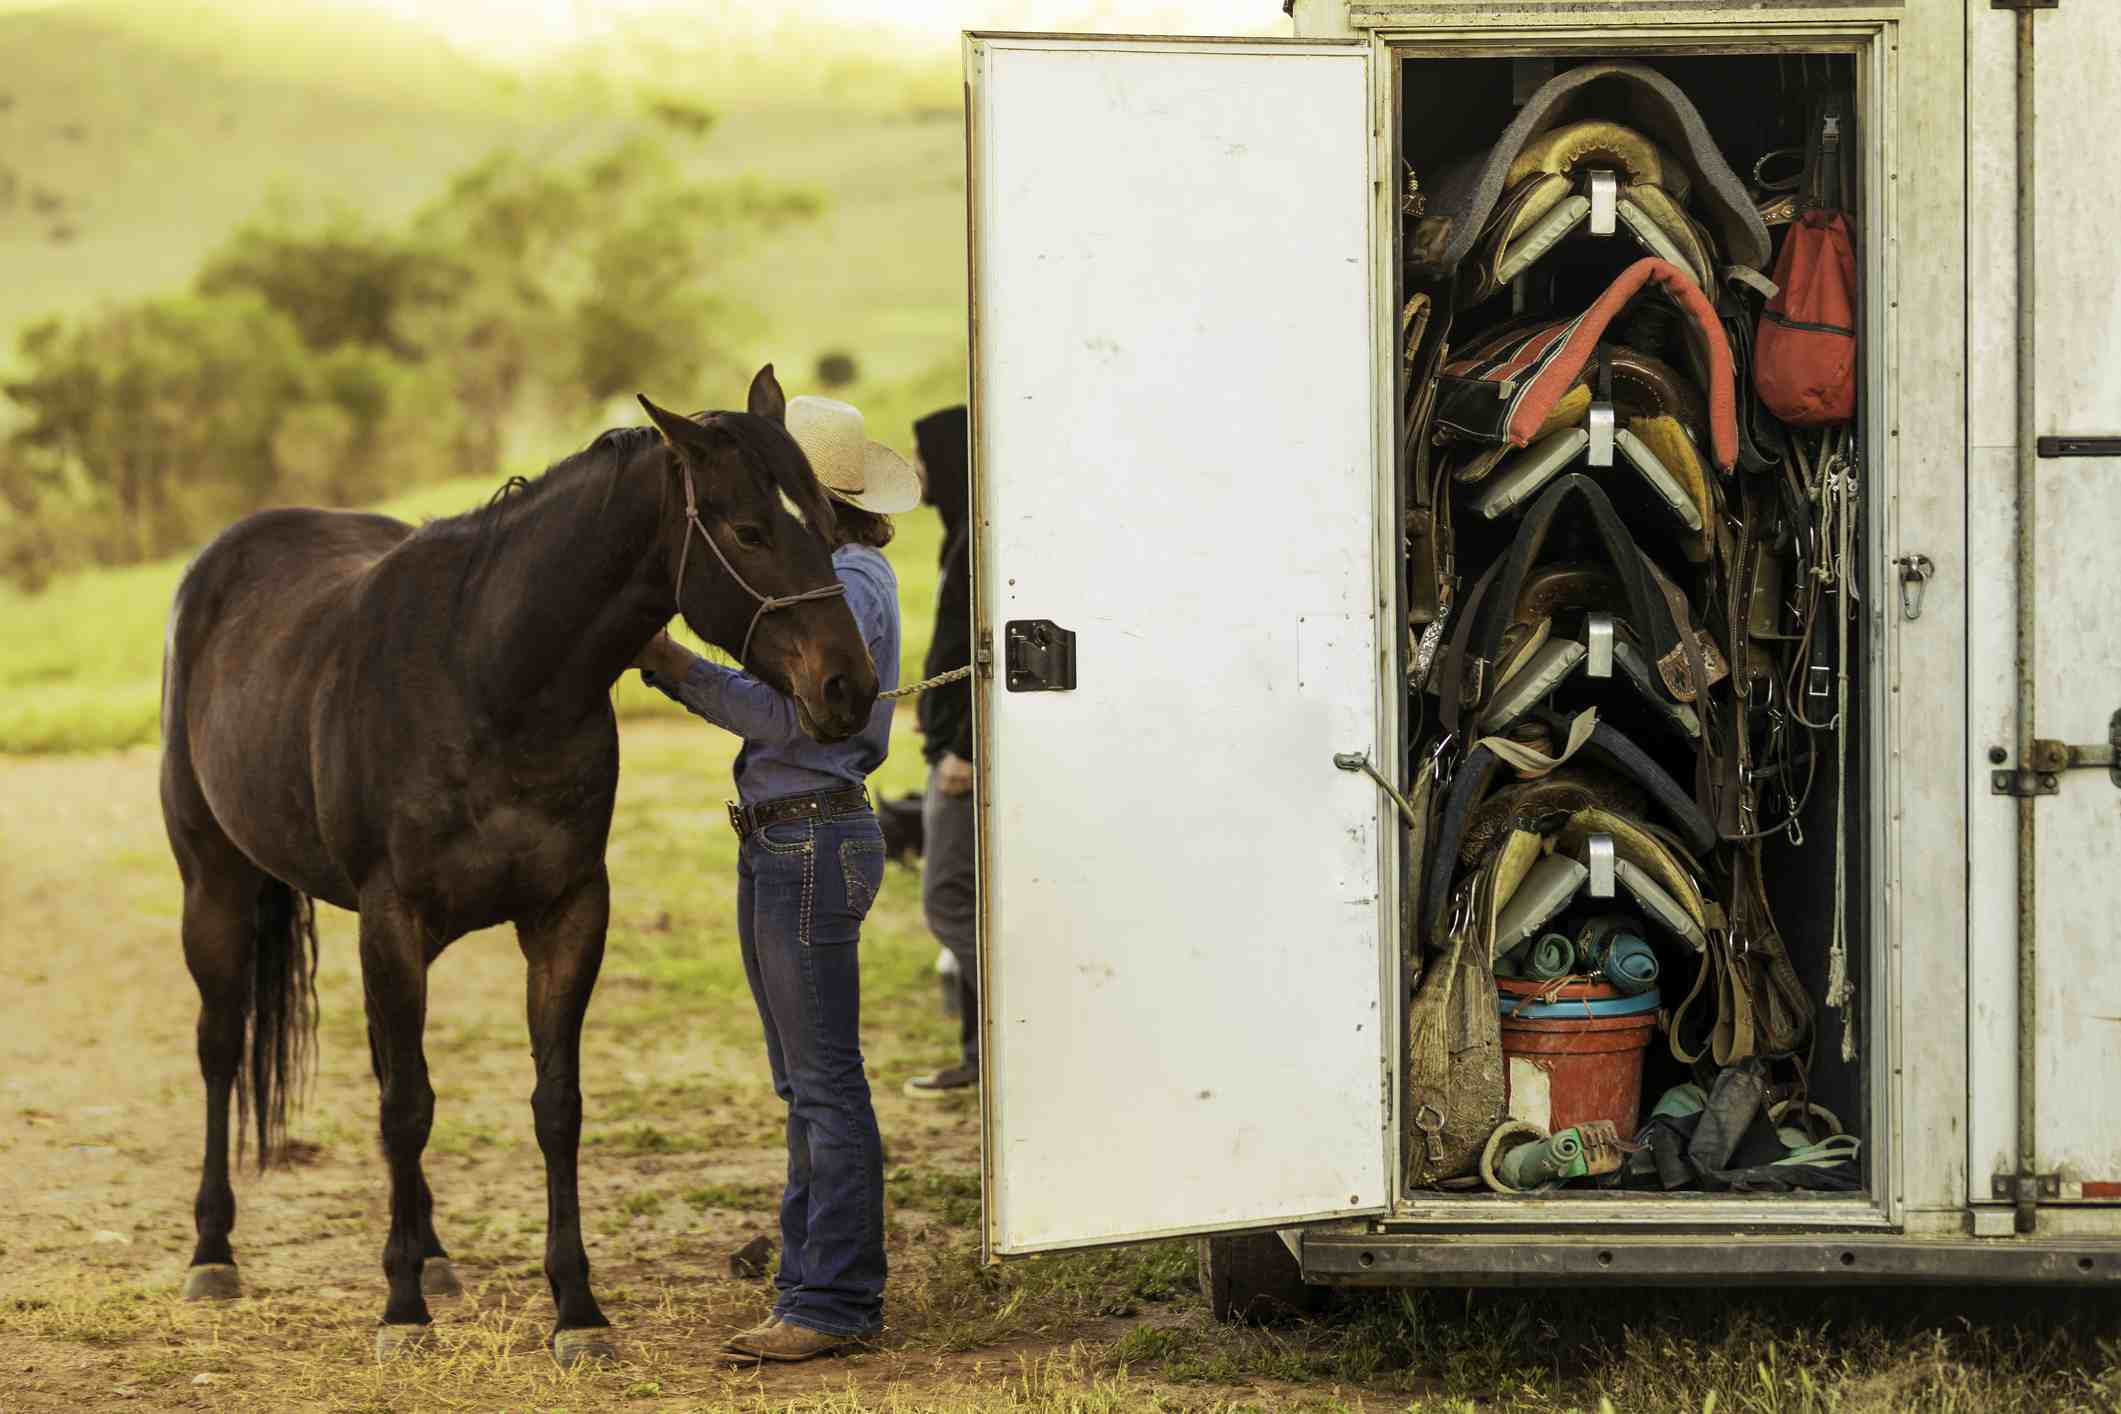 Storage compartment in horse trailer